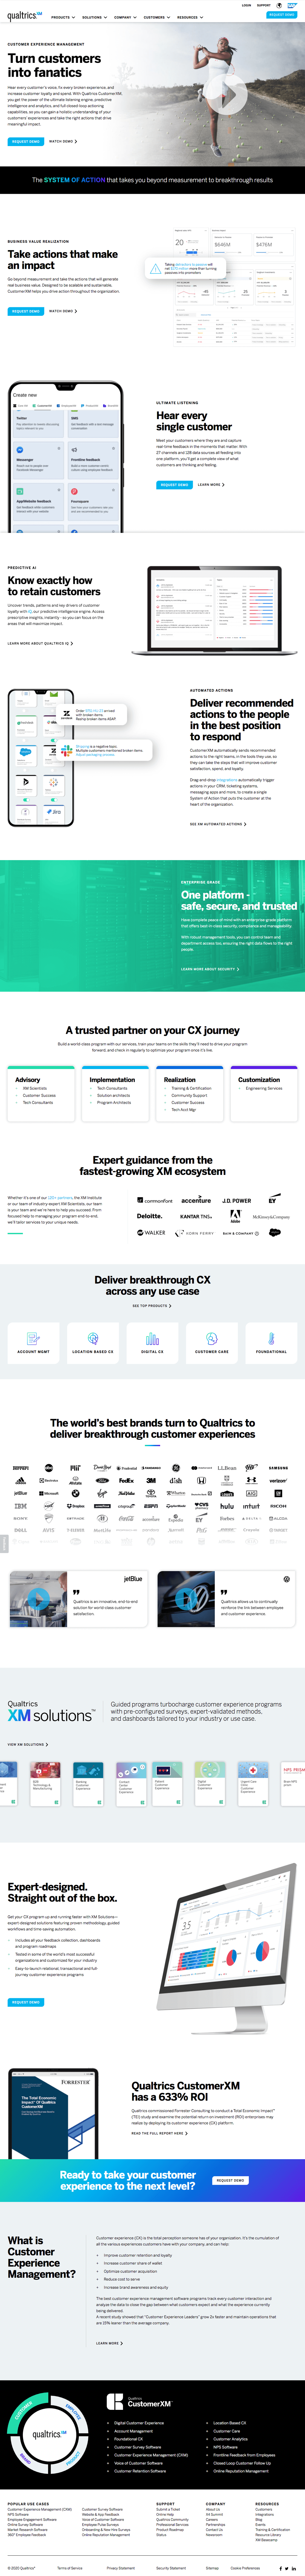 Qualtrics – Features page 2